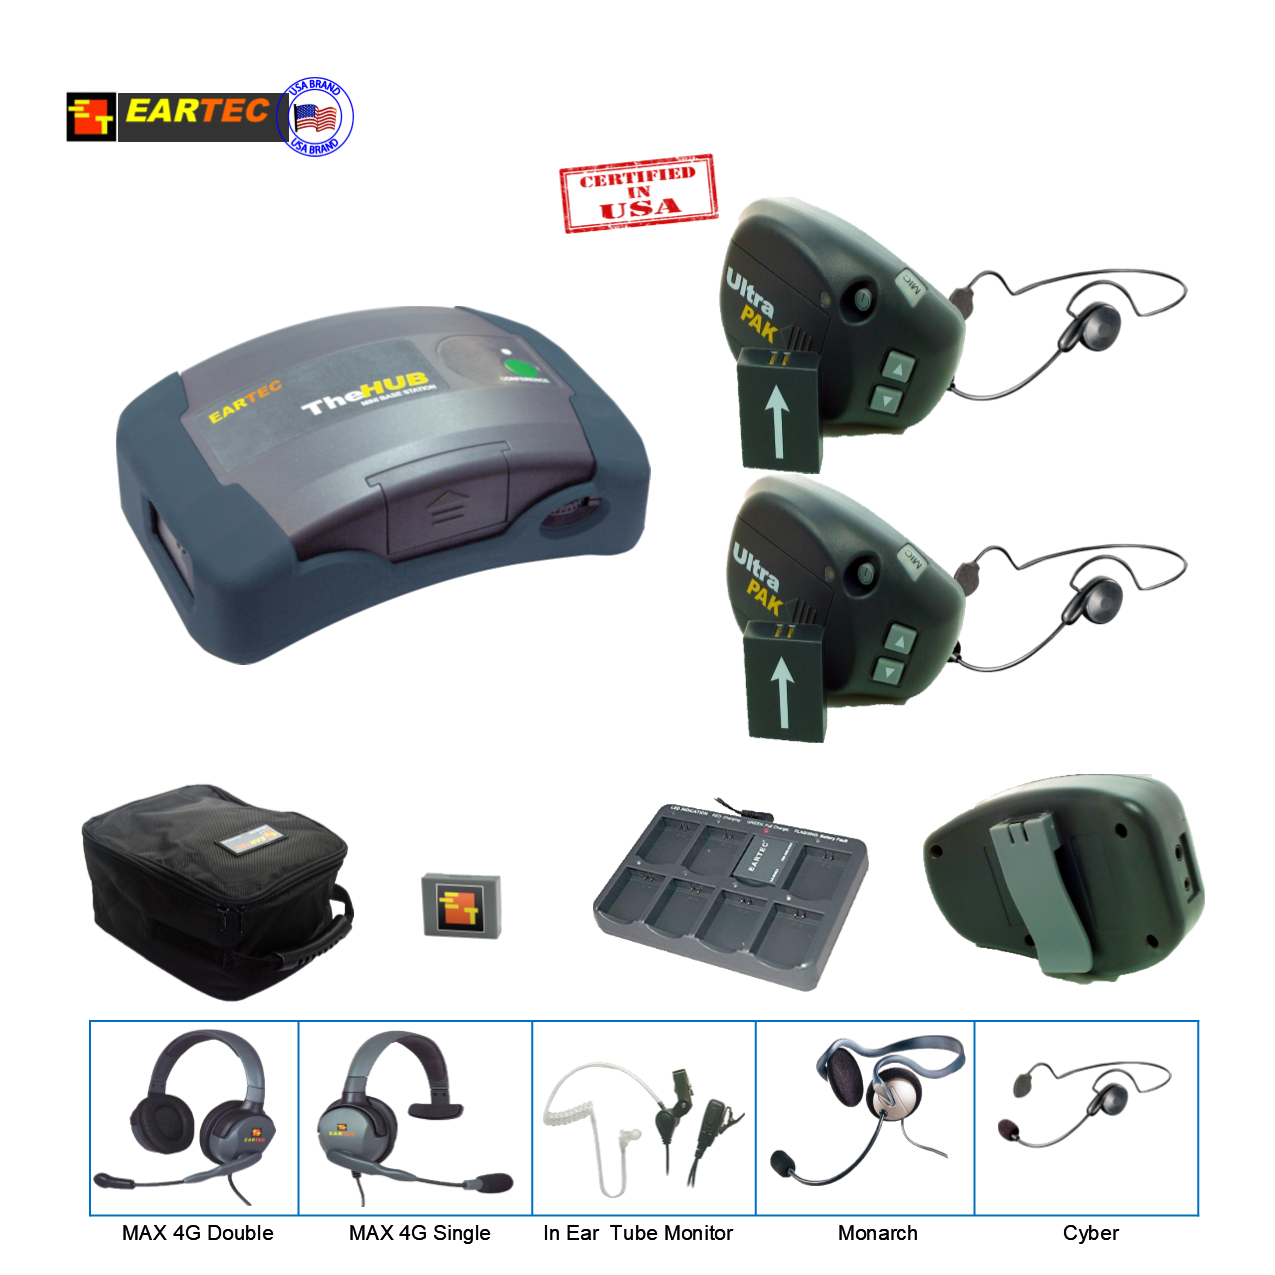 Eartec UPCYB2 UltraPAK 2-Person HUB Intercom System with Cyber Headset Communications & IFB Eartec